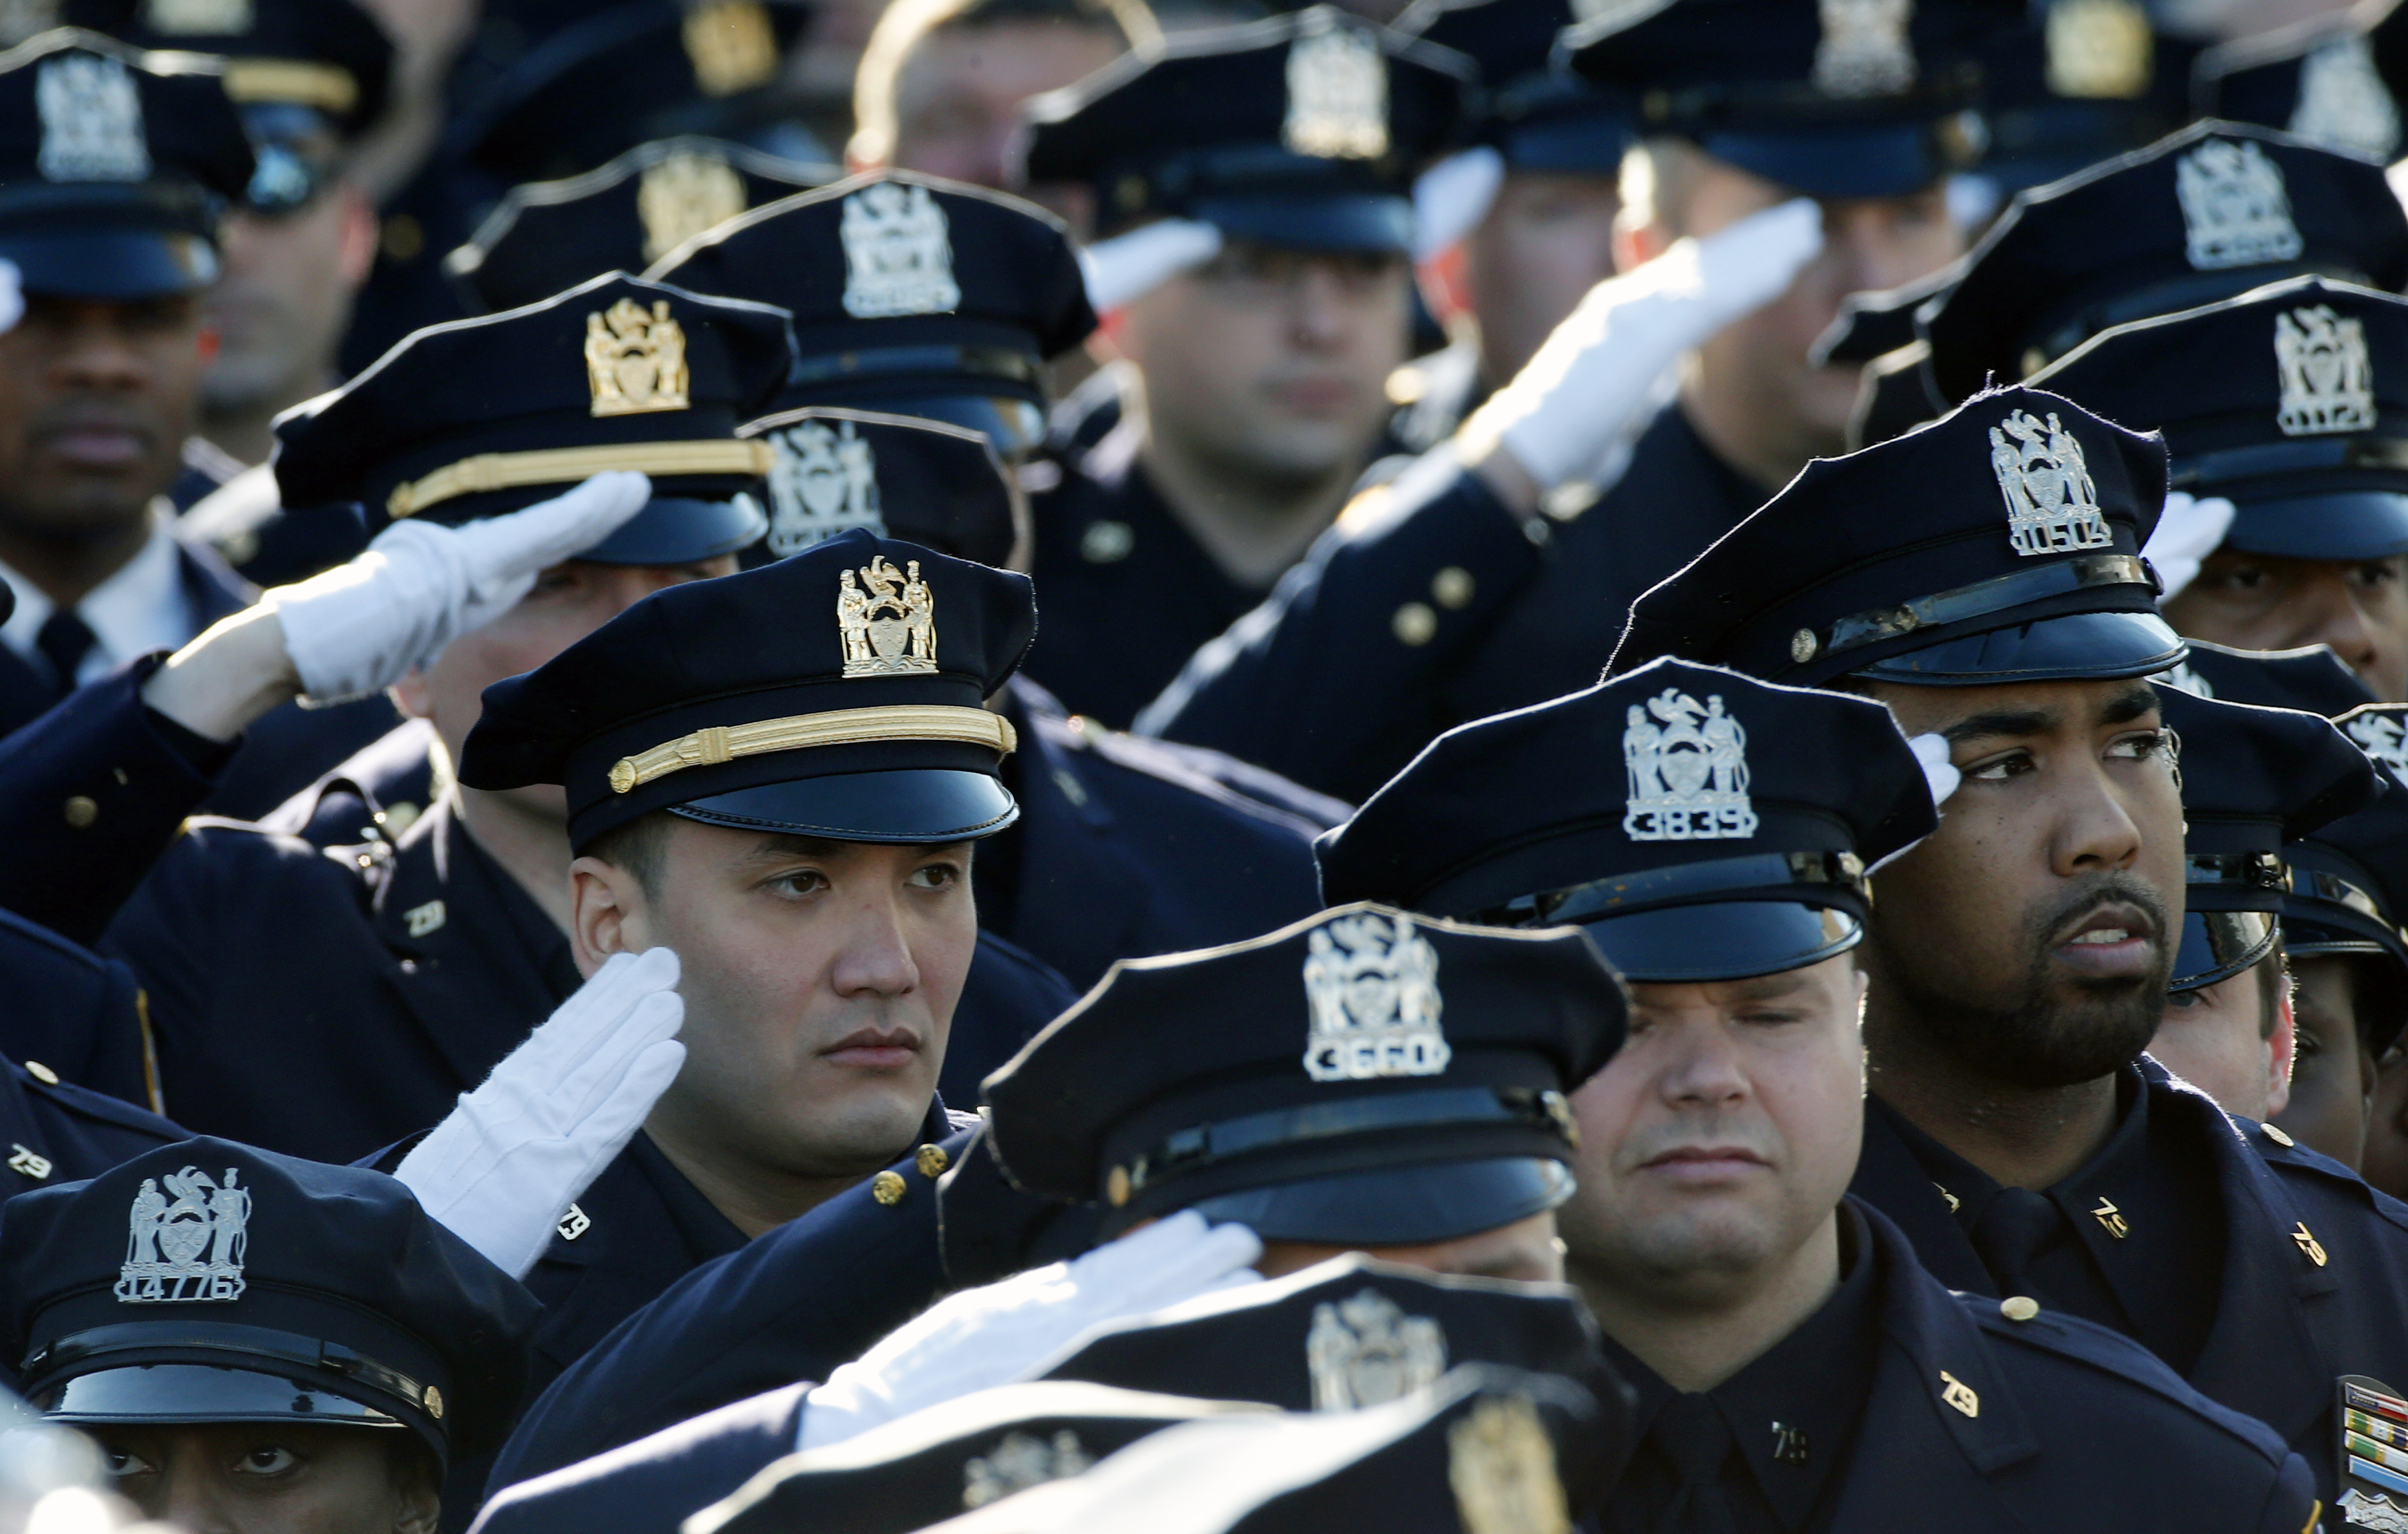 Police salute during the playing of the U.S. national anthem outside the Christ Tabernacle Church in New York City at the start of the funeral service for slain New York Police Department officer Rafael Ramos on Dec. 27, 2014